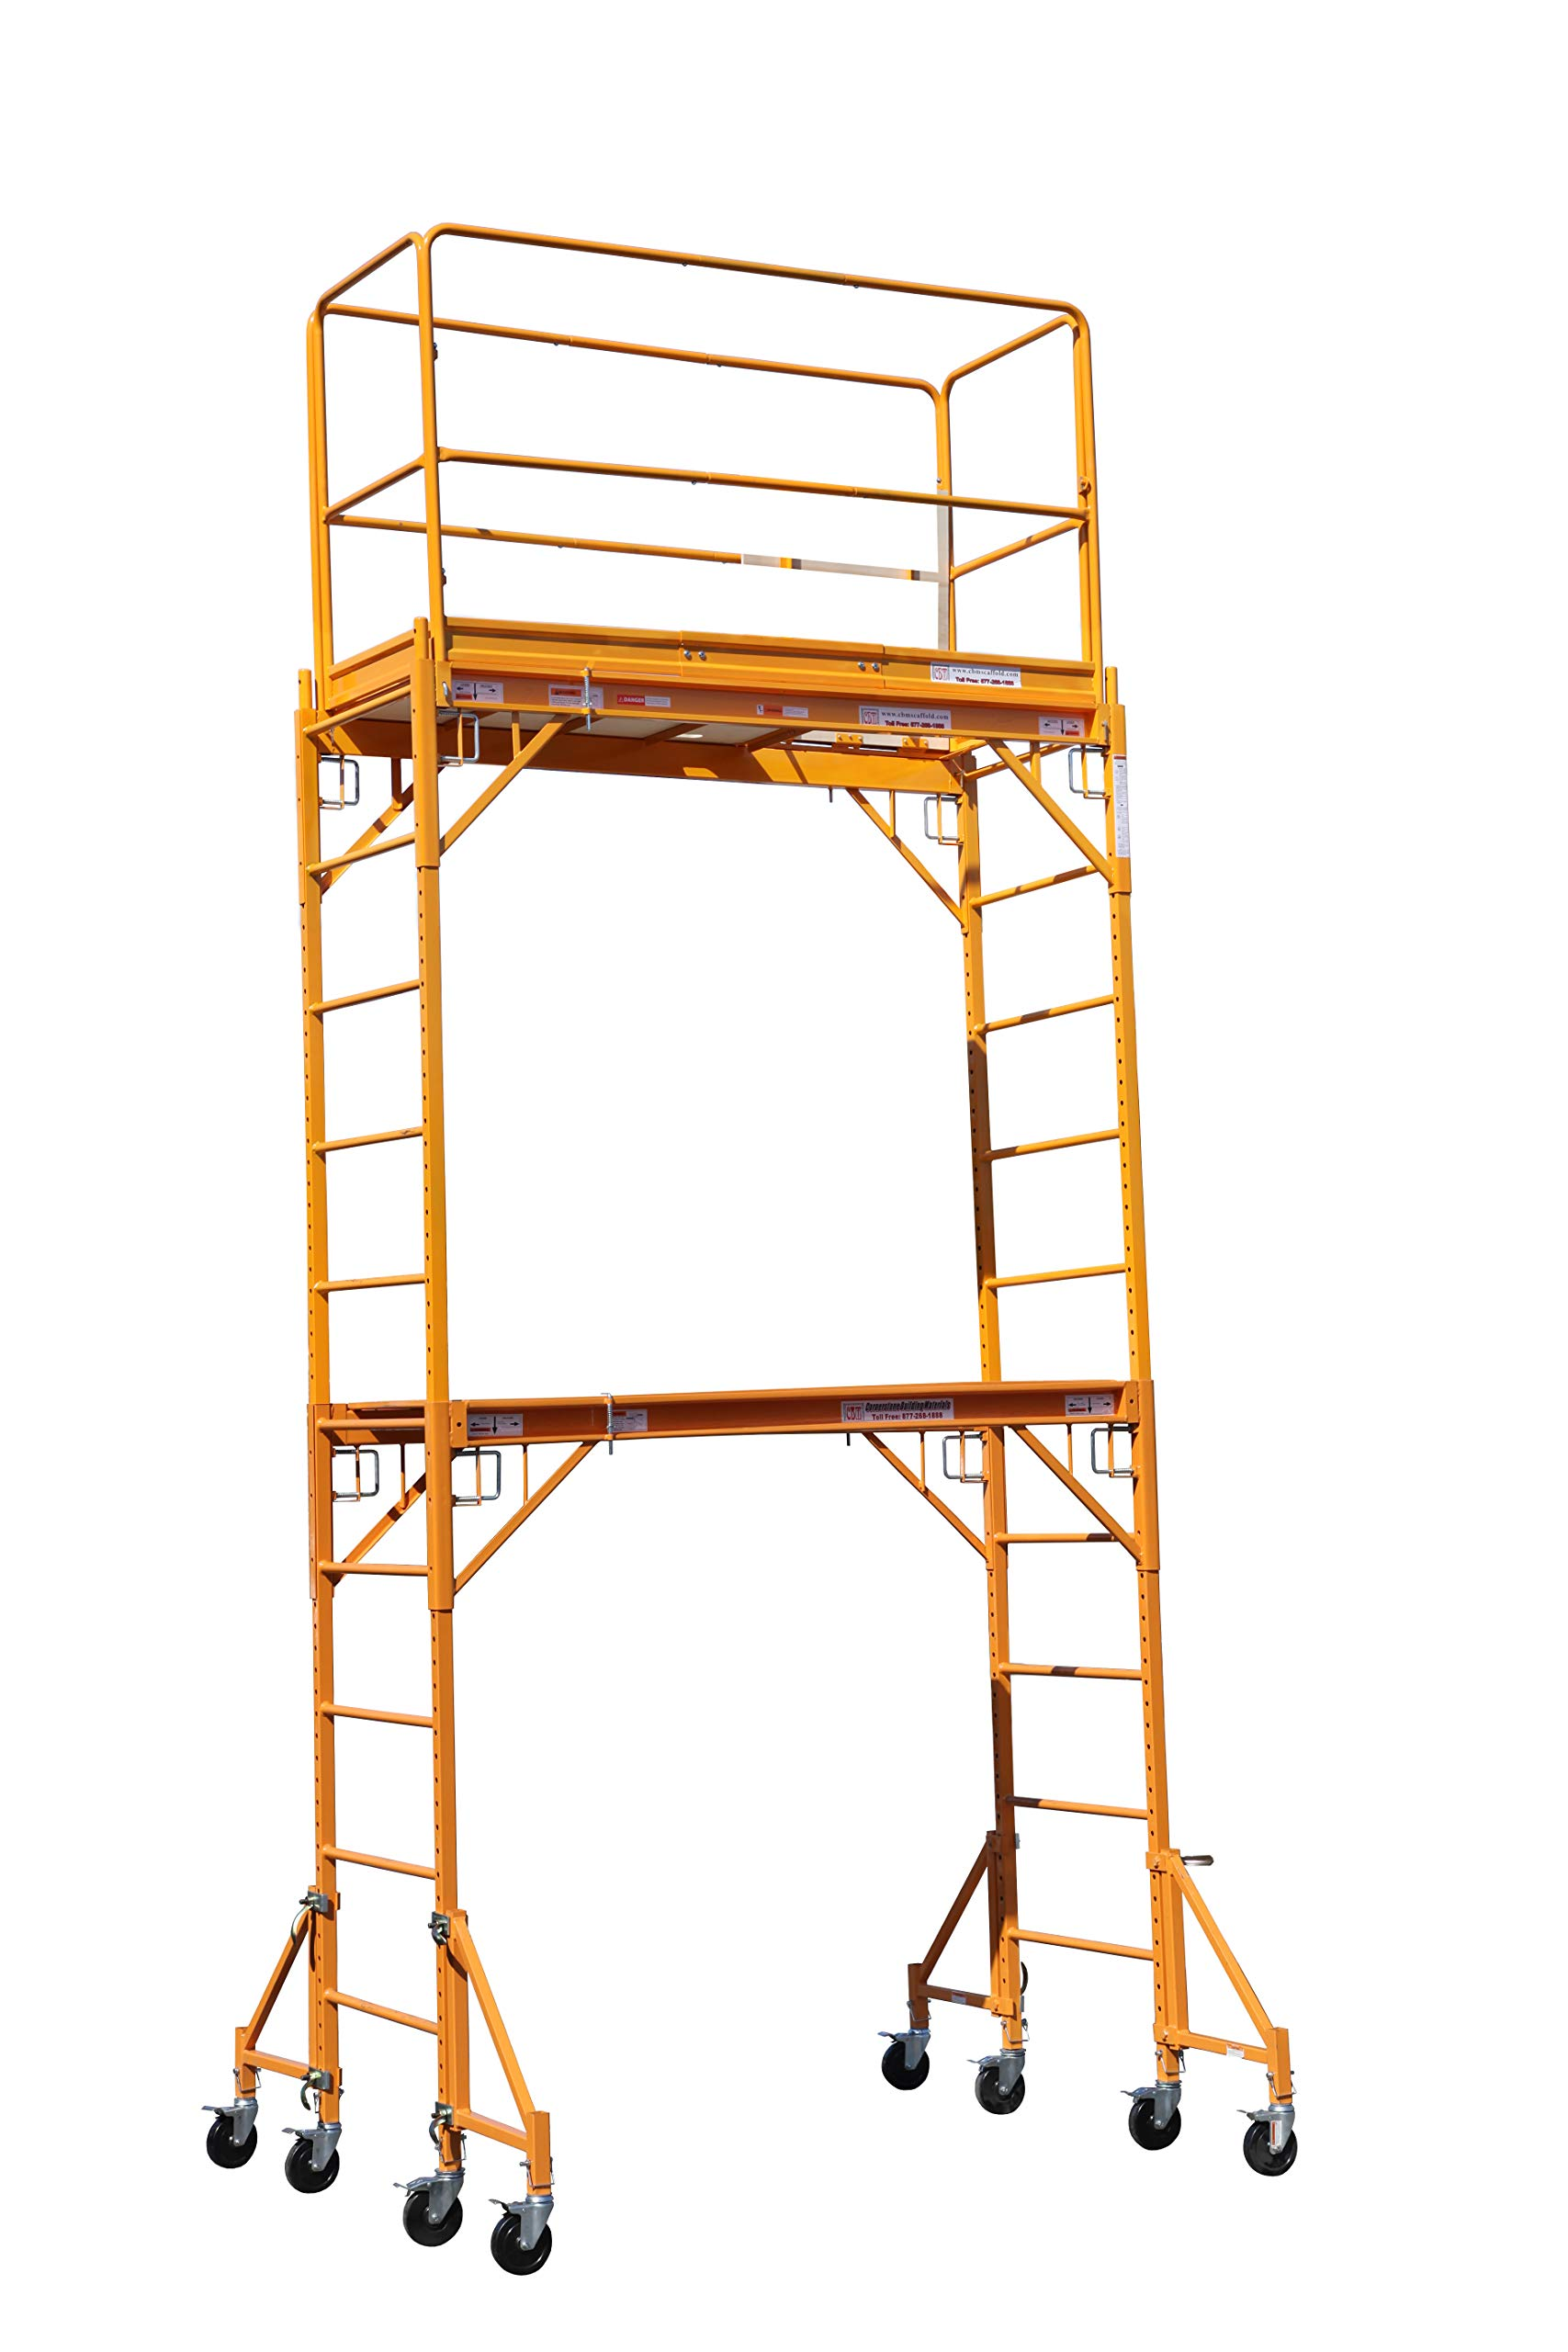 CBMScaffold Multipurpose Maxi Square Baker Style Scaffold Tower with Improved Clamp on 18'' Outrigger Package - 12ft, 1,000-Lb. Capacity, Model# 2MFS18O by CBM Scaffold